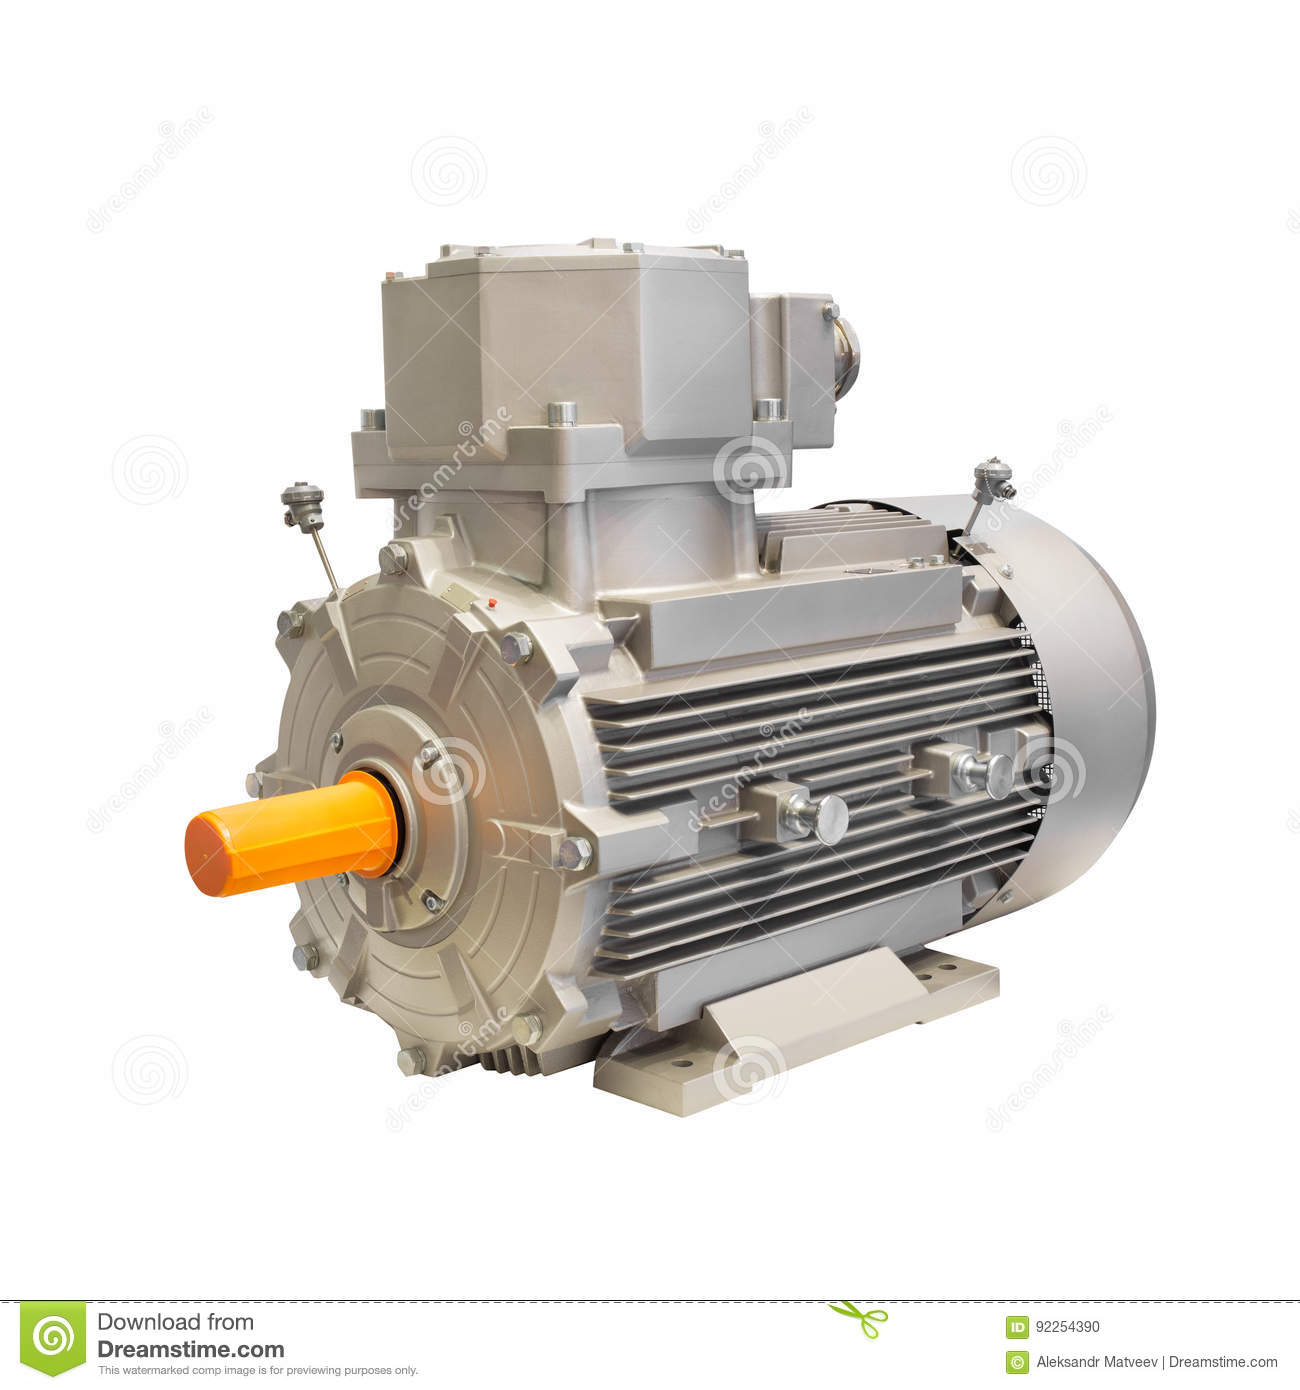 electric generator motor. Industrial Electric Motor Generator Isolated On White Background Stock Photo - Image Of Generation, Industrial: 92254390 C